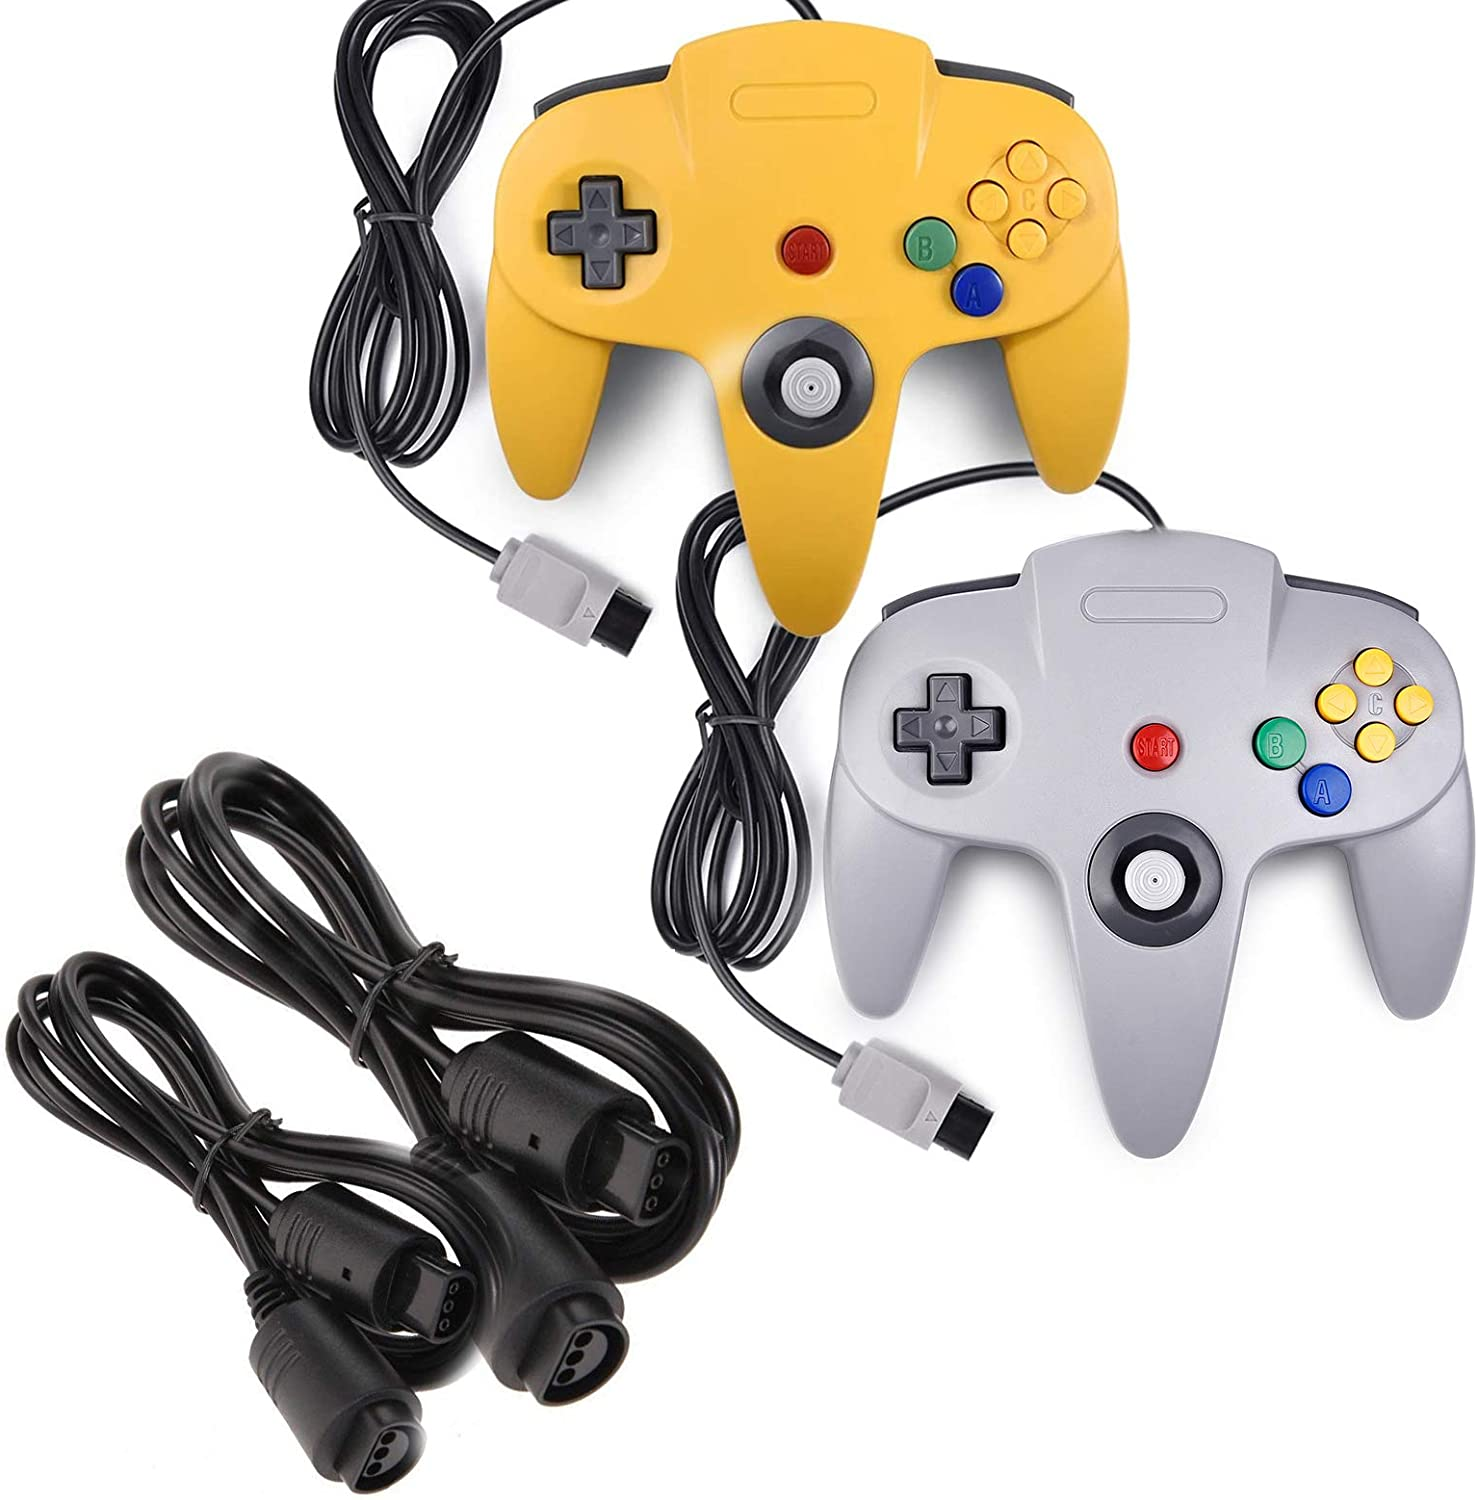 miadore 2 Pack Classic N64 Controllers (Yellow/Gray) Bundle with 2 Pack 6FT N64 Controller Extension Cable